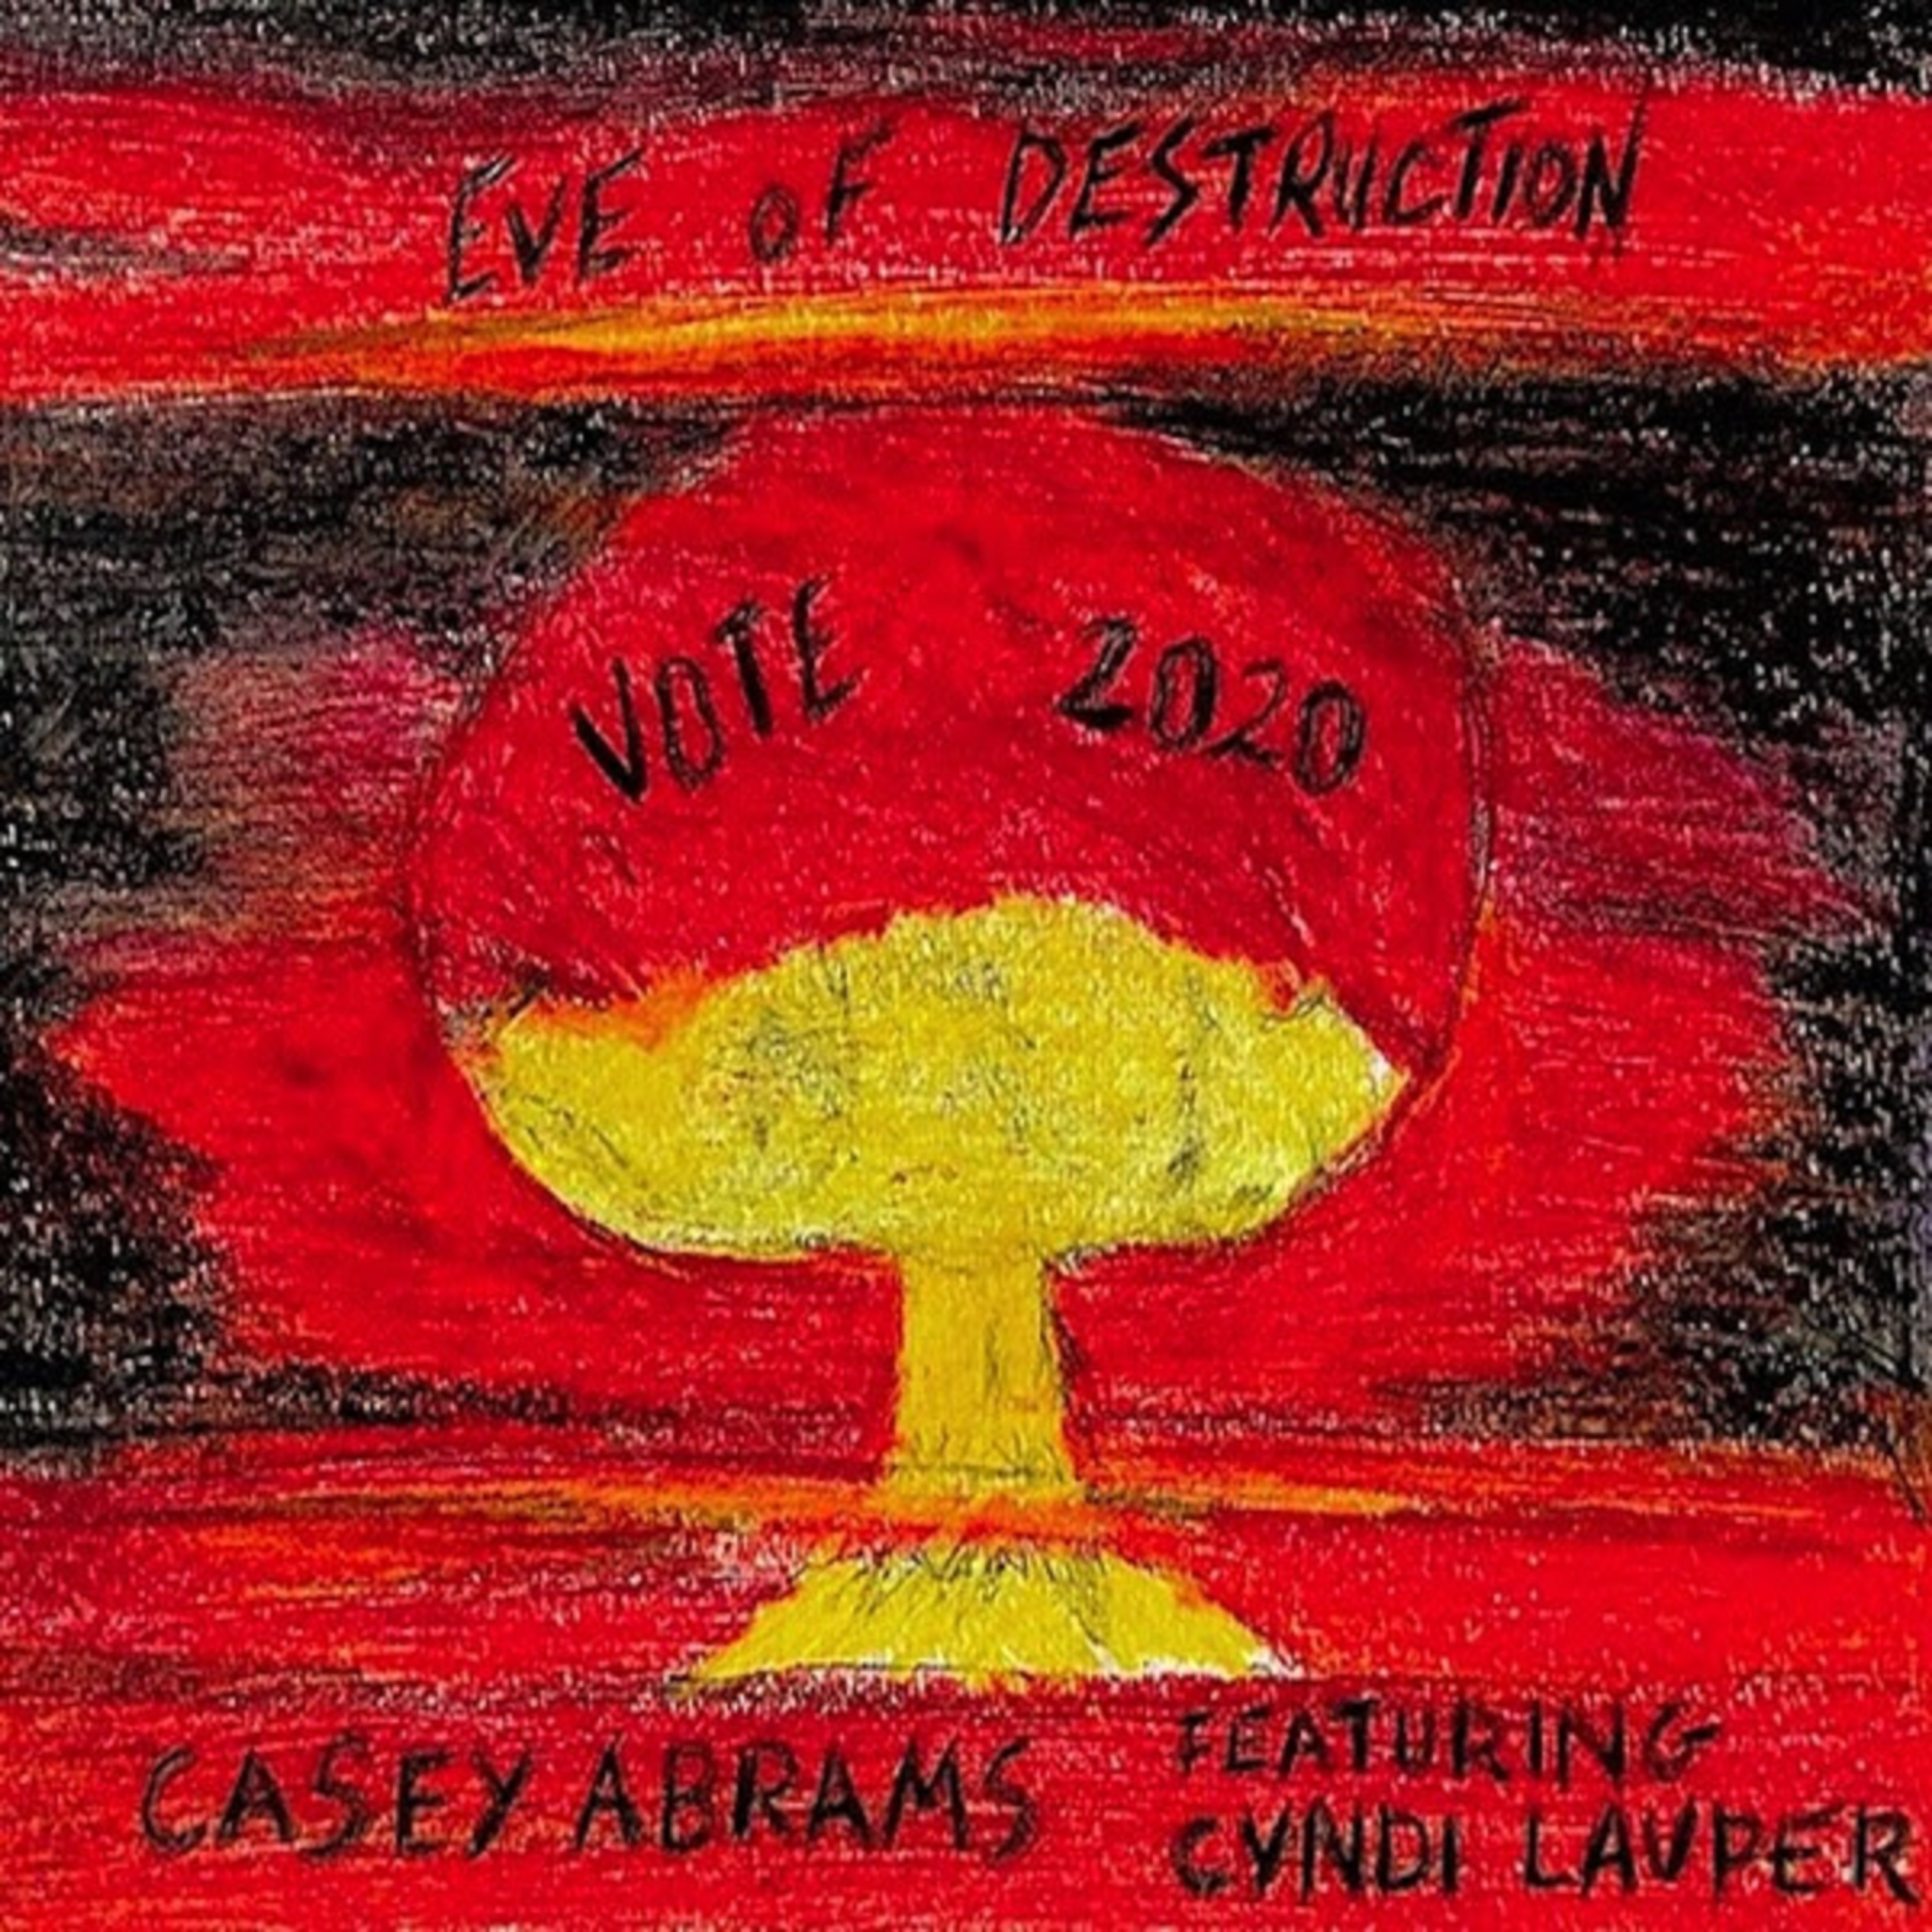 Casey Abrams Joins Voices with Cyndi Lauper on Iconic Protest Song EVE OF DESTRUCTION